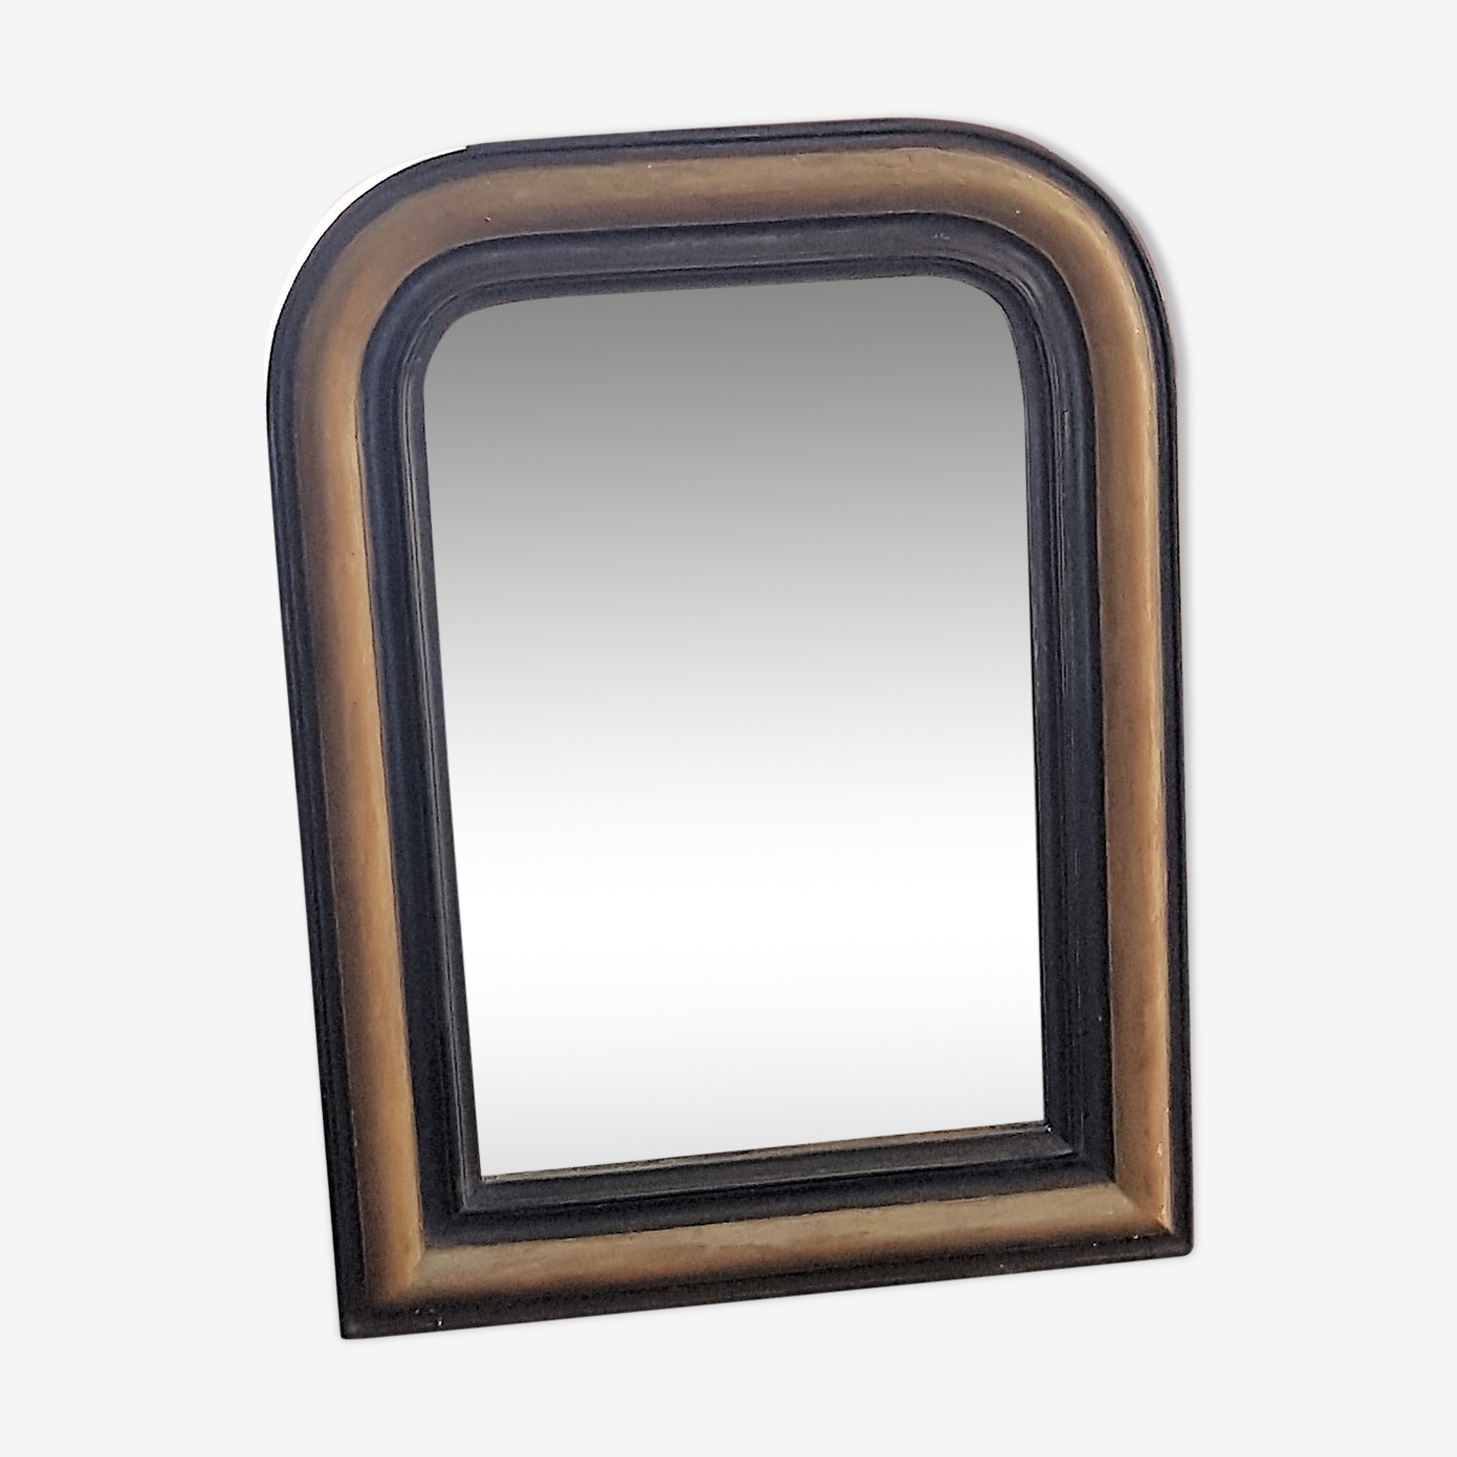 Old black and gold wood mirror 48x64cm